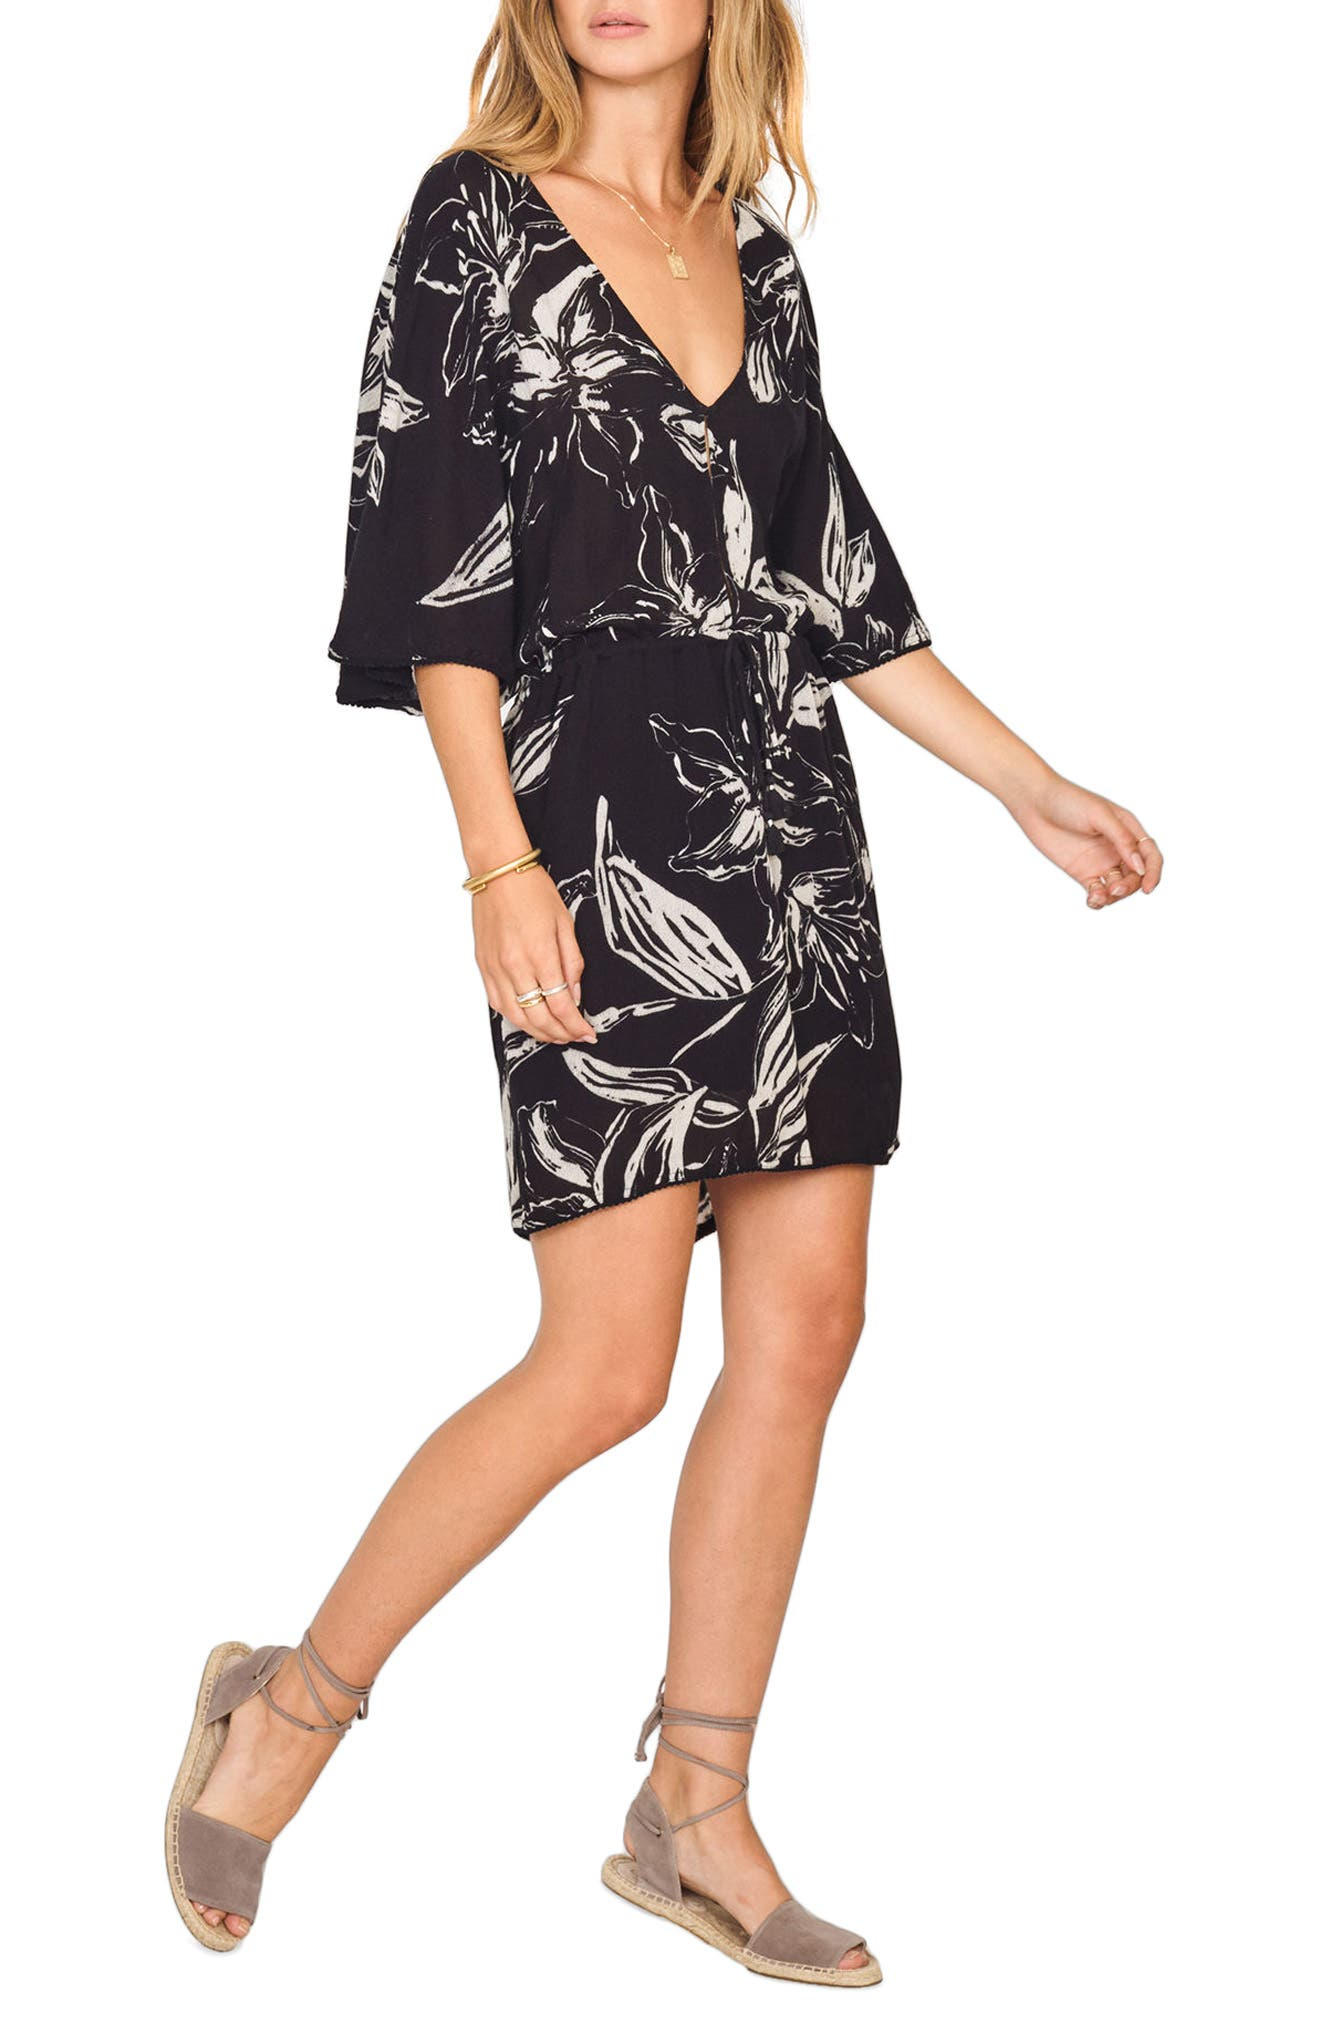 Alternate Image 1 Selected - Amuse Society Cross My Heart Floral Print Dress